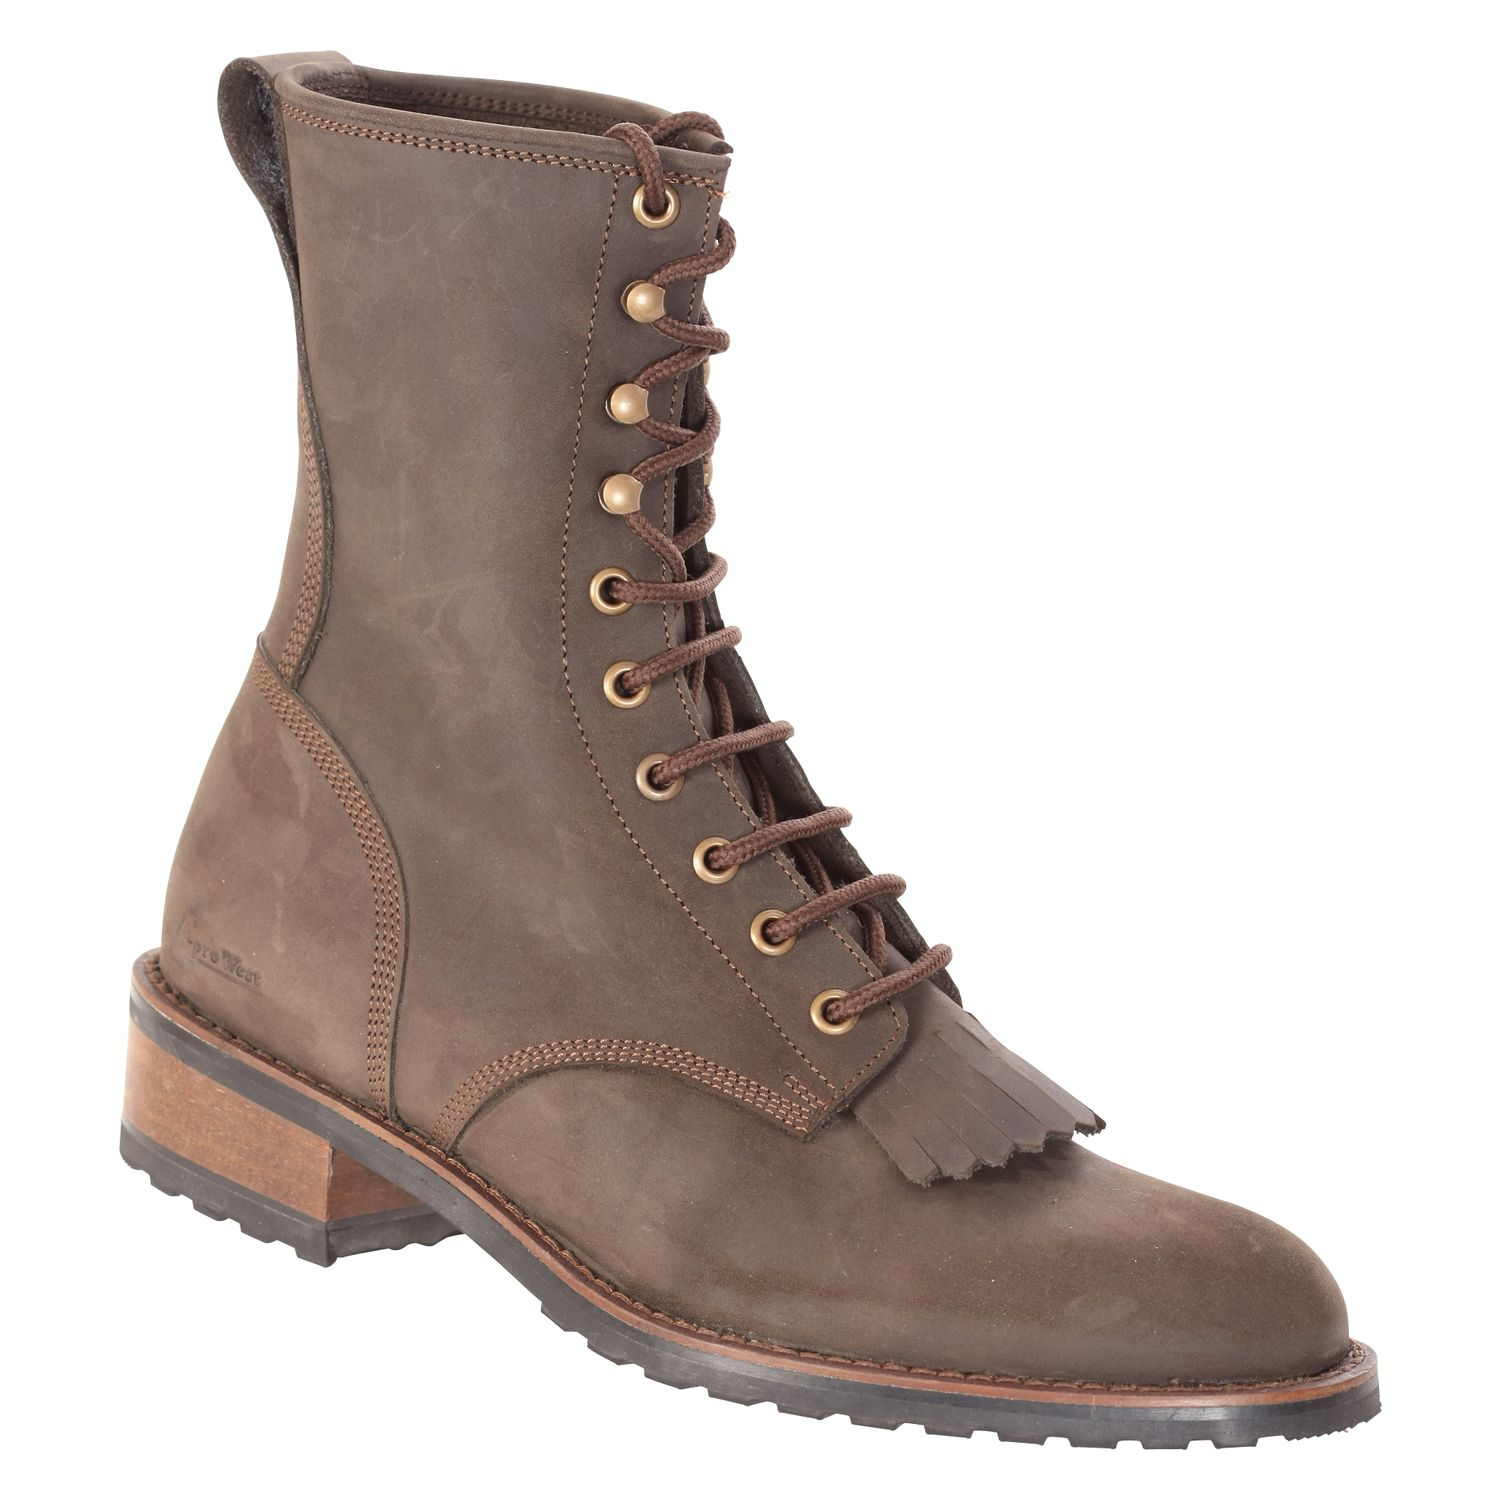 L-pro West Lacer-Boot New Denver